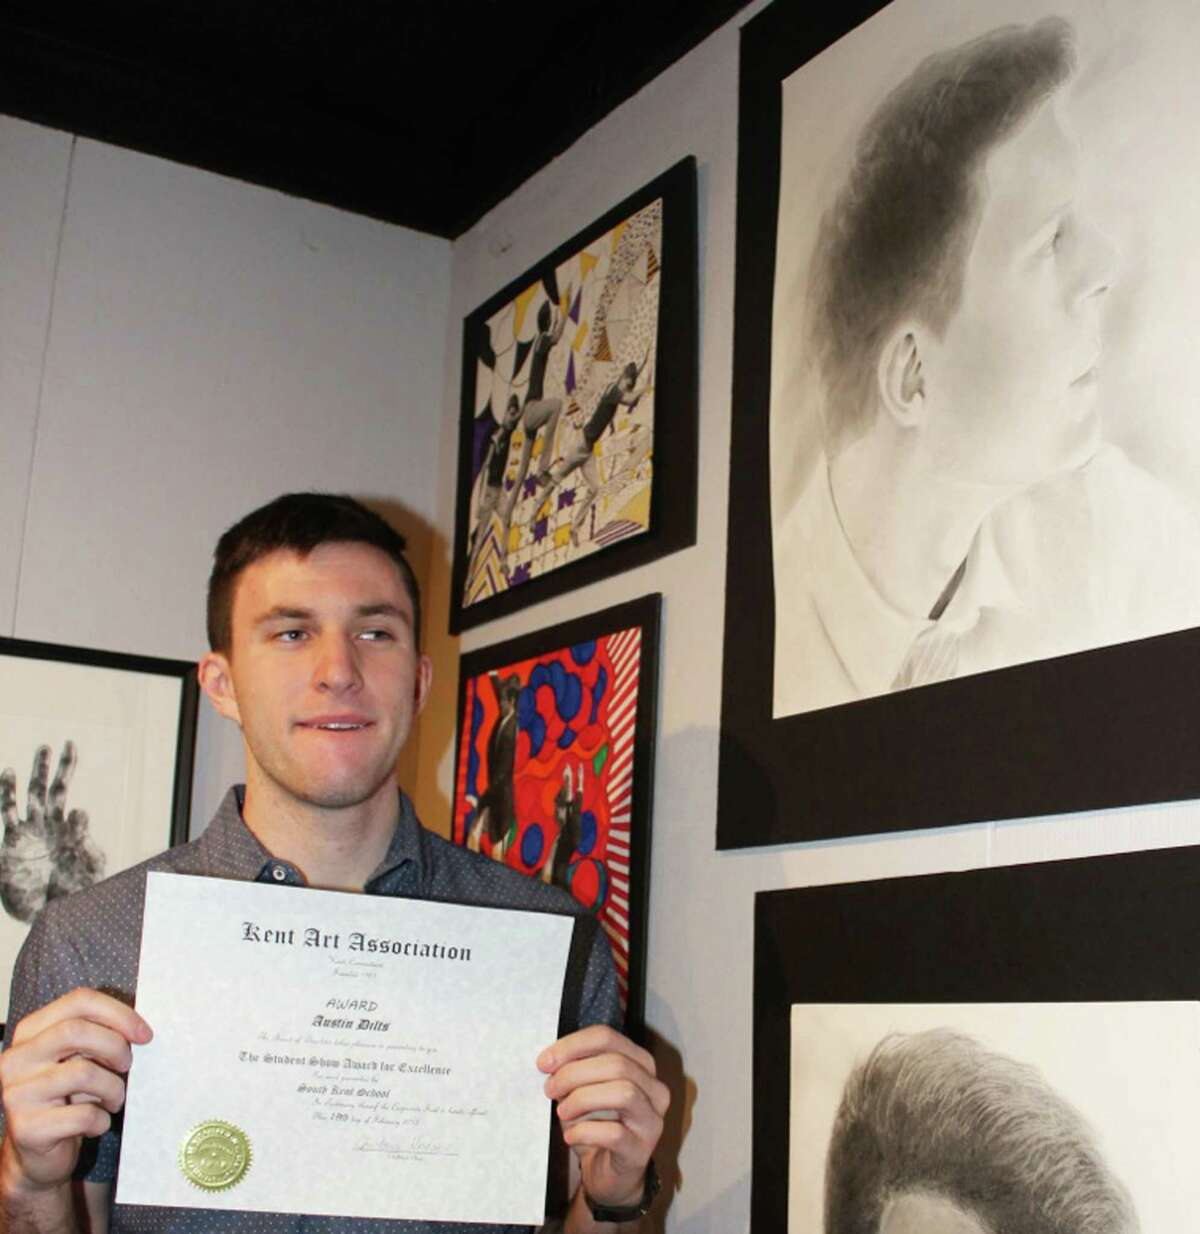 Austin Dilts, a student at South Kent School, was one of nine winners at the recent Kent Art Association student art show. Austin was recognized for his self-portrait, shown here, upper right. February 2015 Courtesy of Kent Art Association